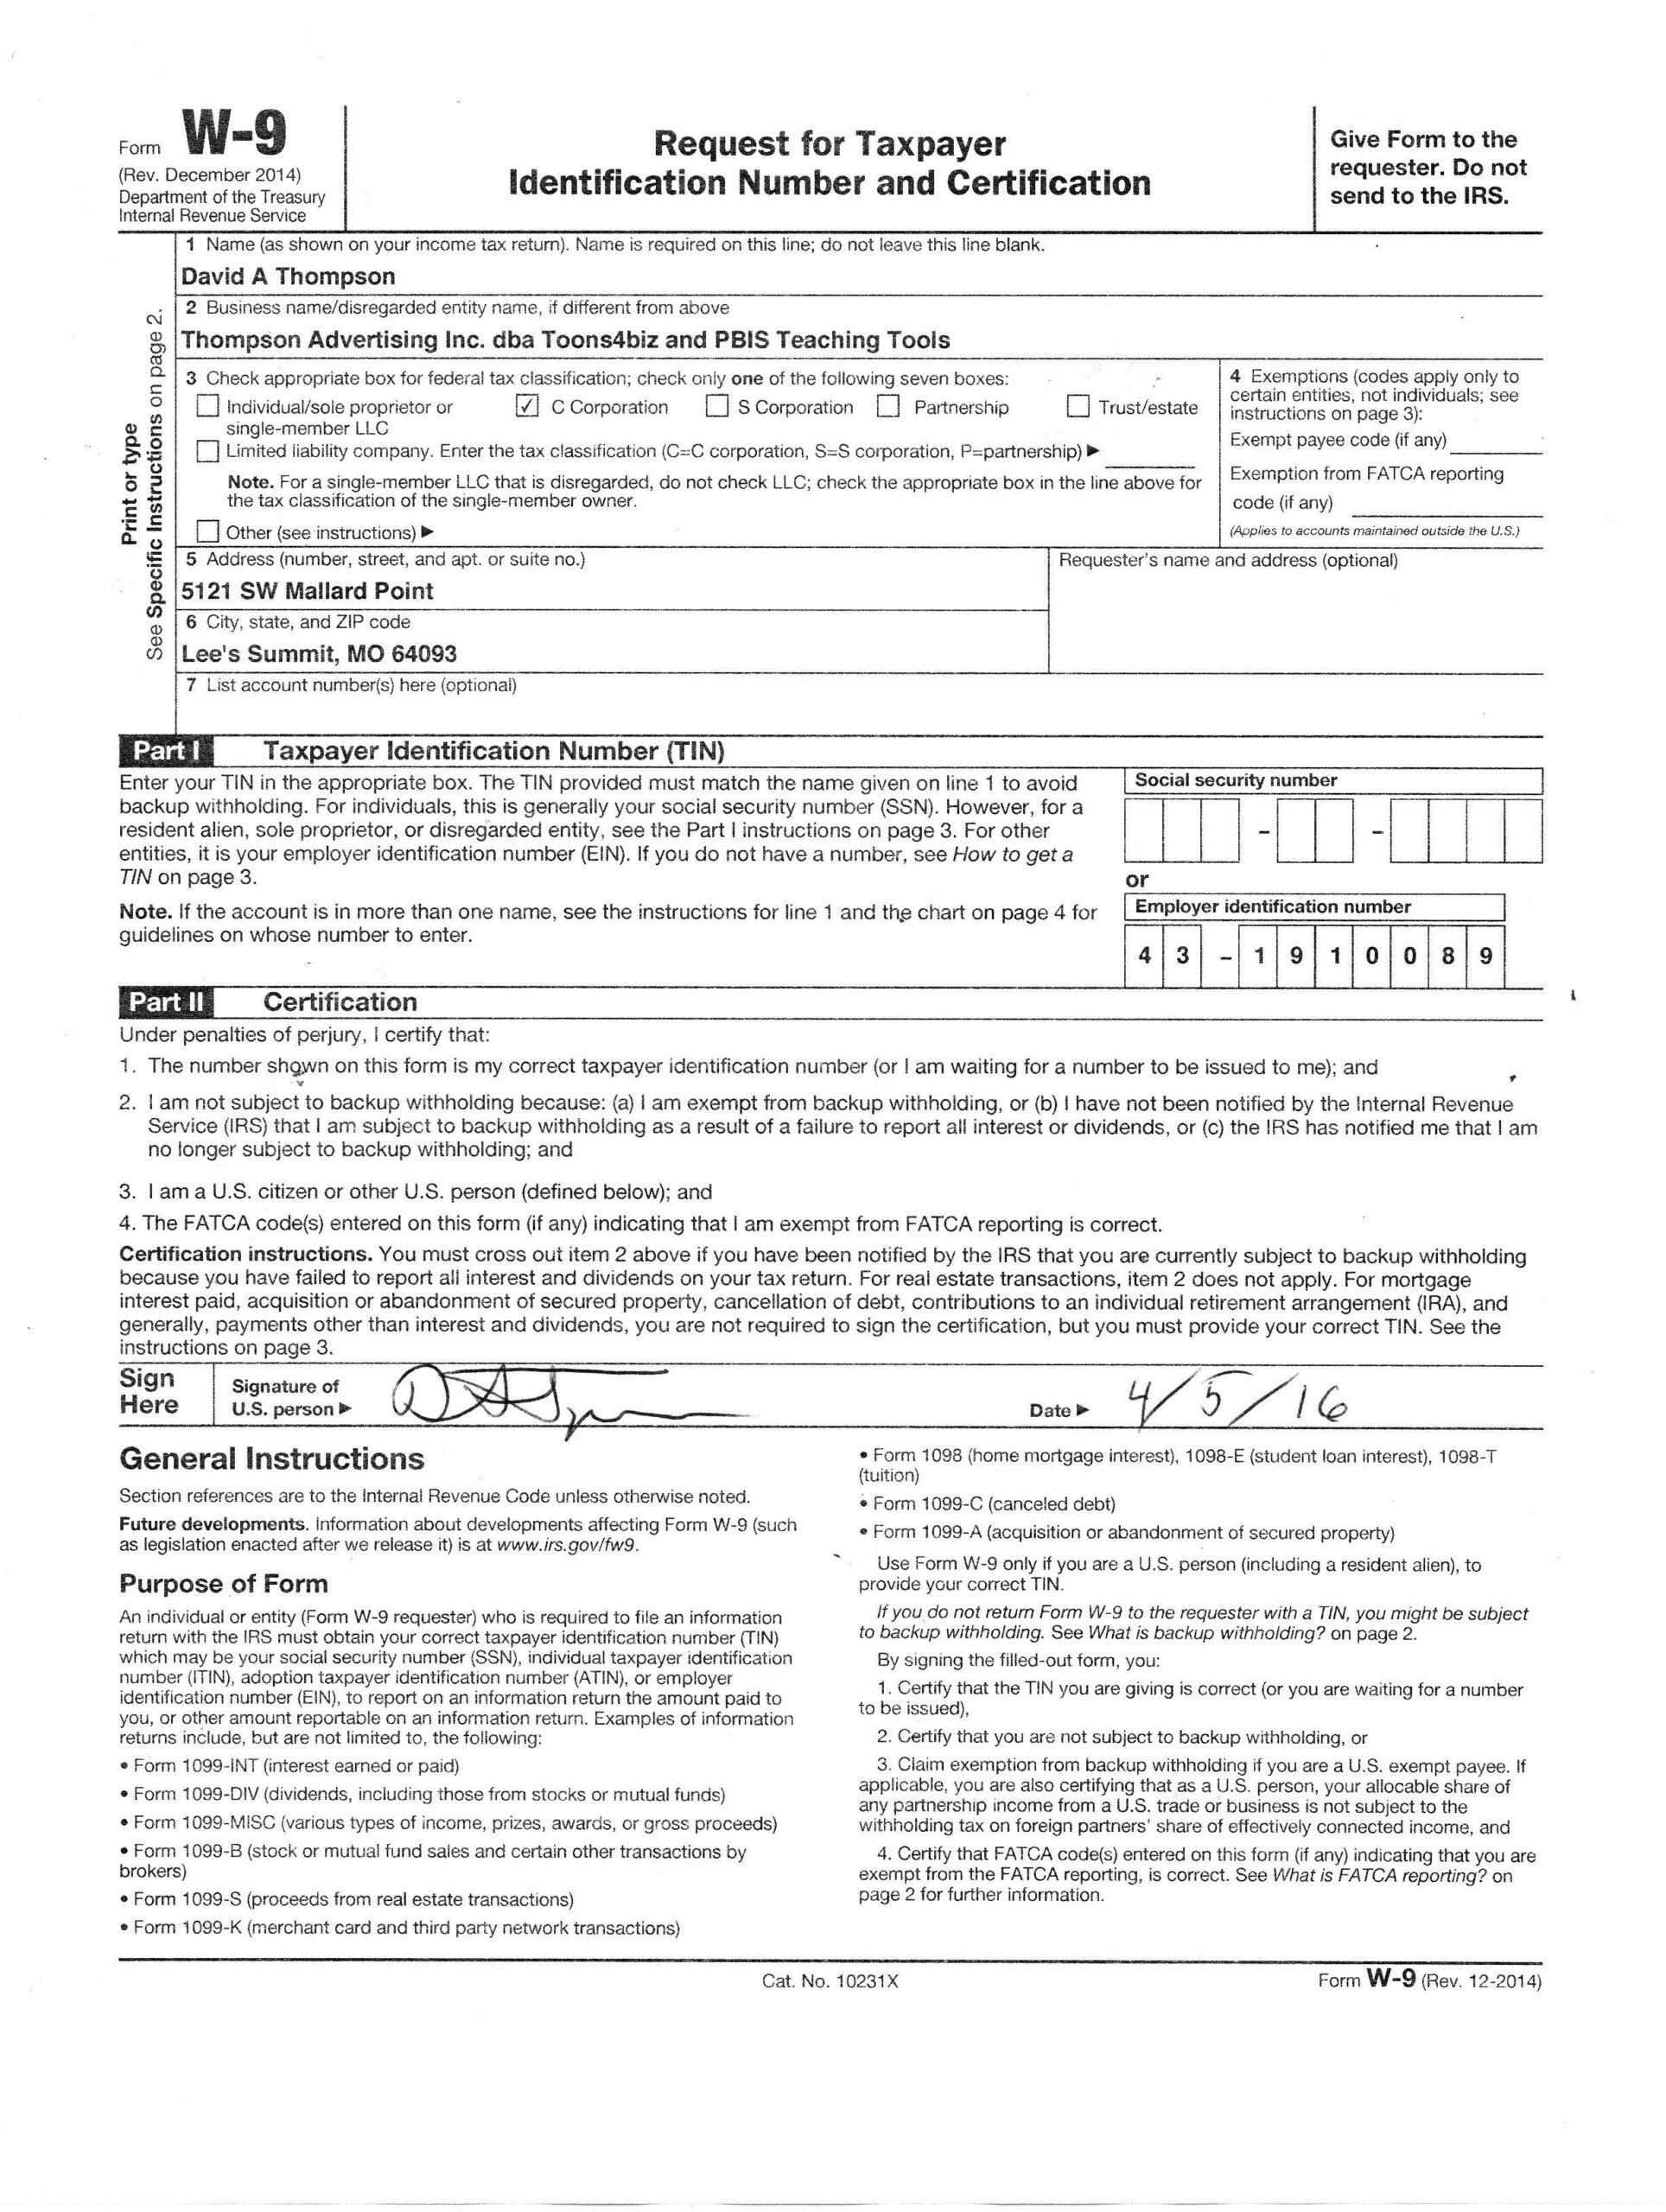 Downloadable W 9 Form W9 Form Mascot Junction In 2020 for Printable W-9 Irs Form